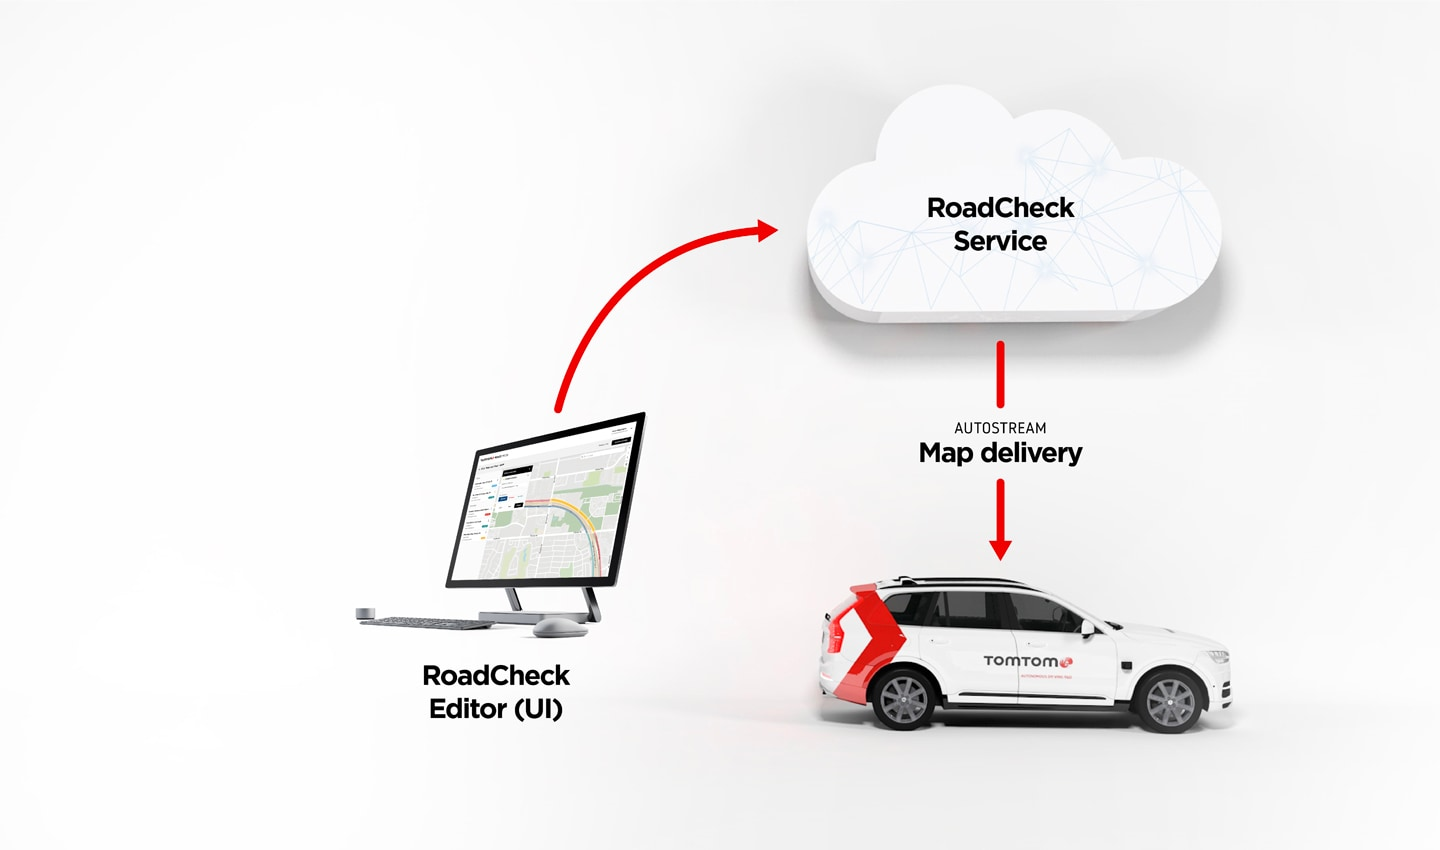 Overview of RoadCheck Editor and RoadCheck Service